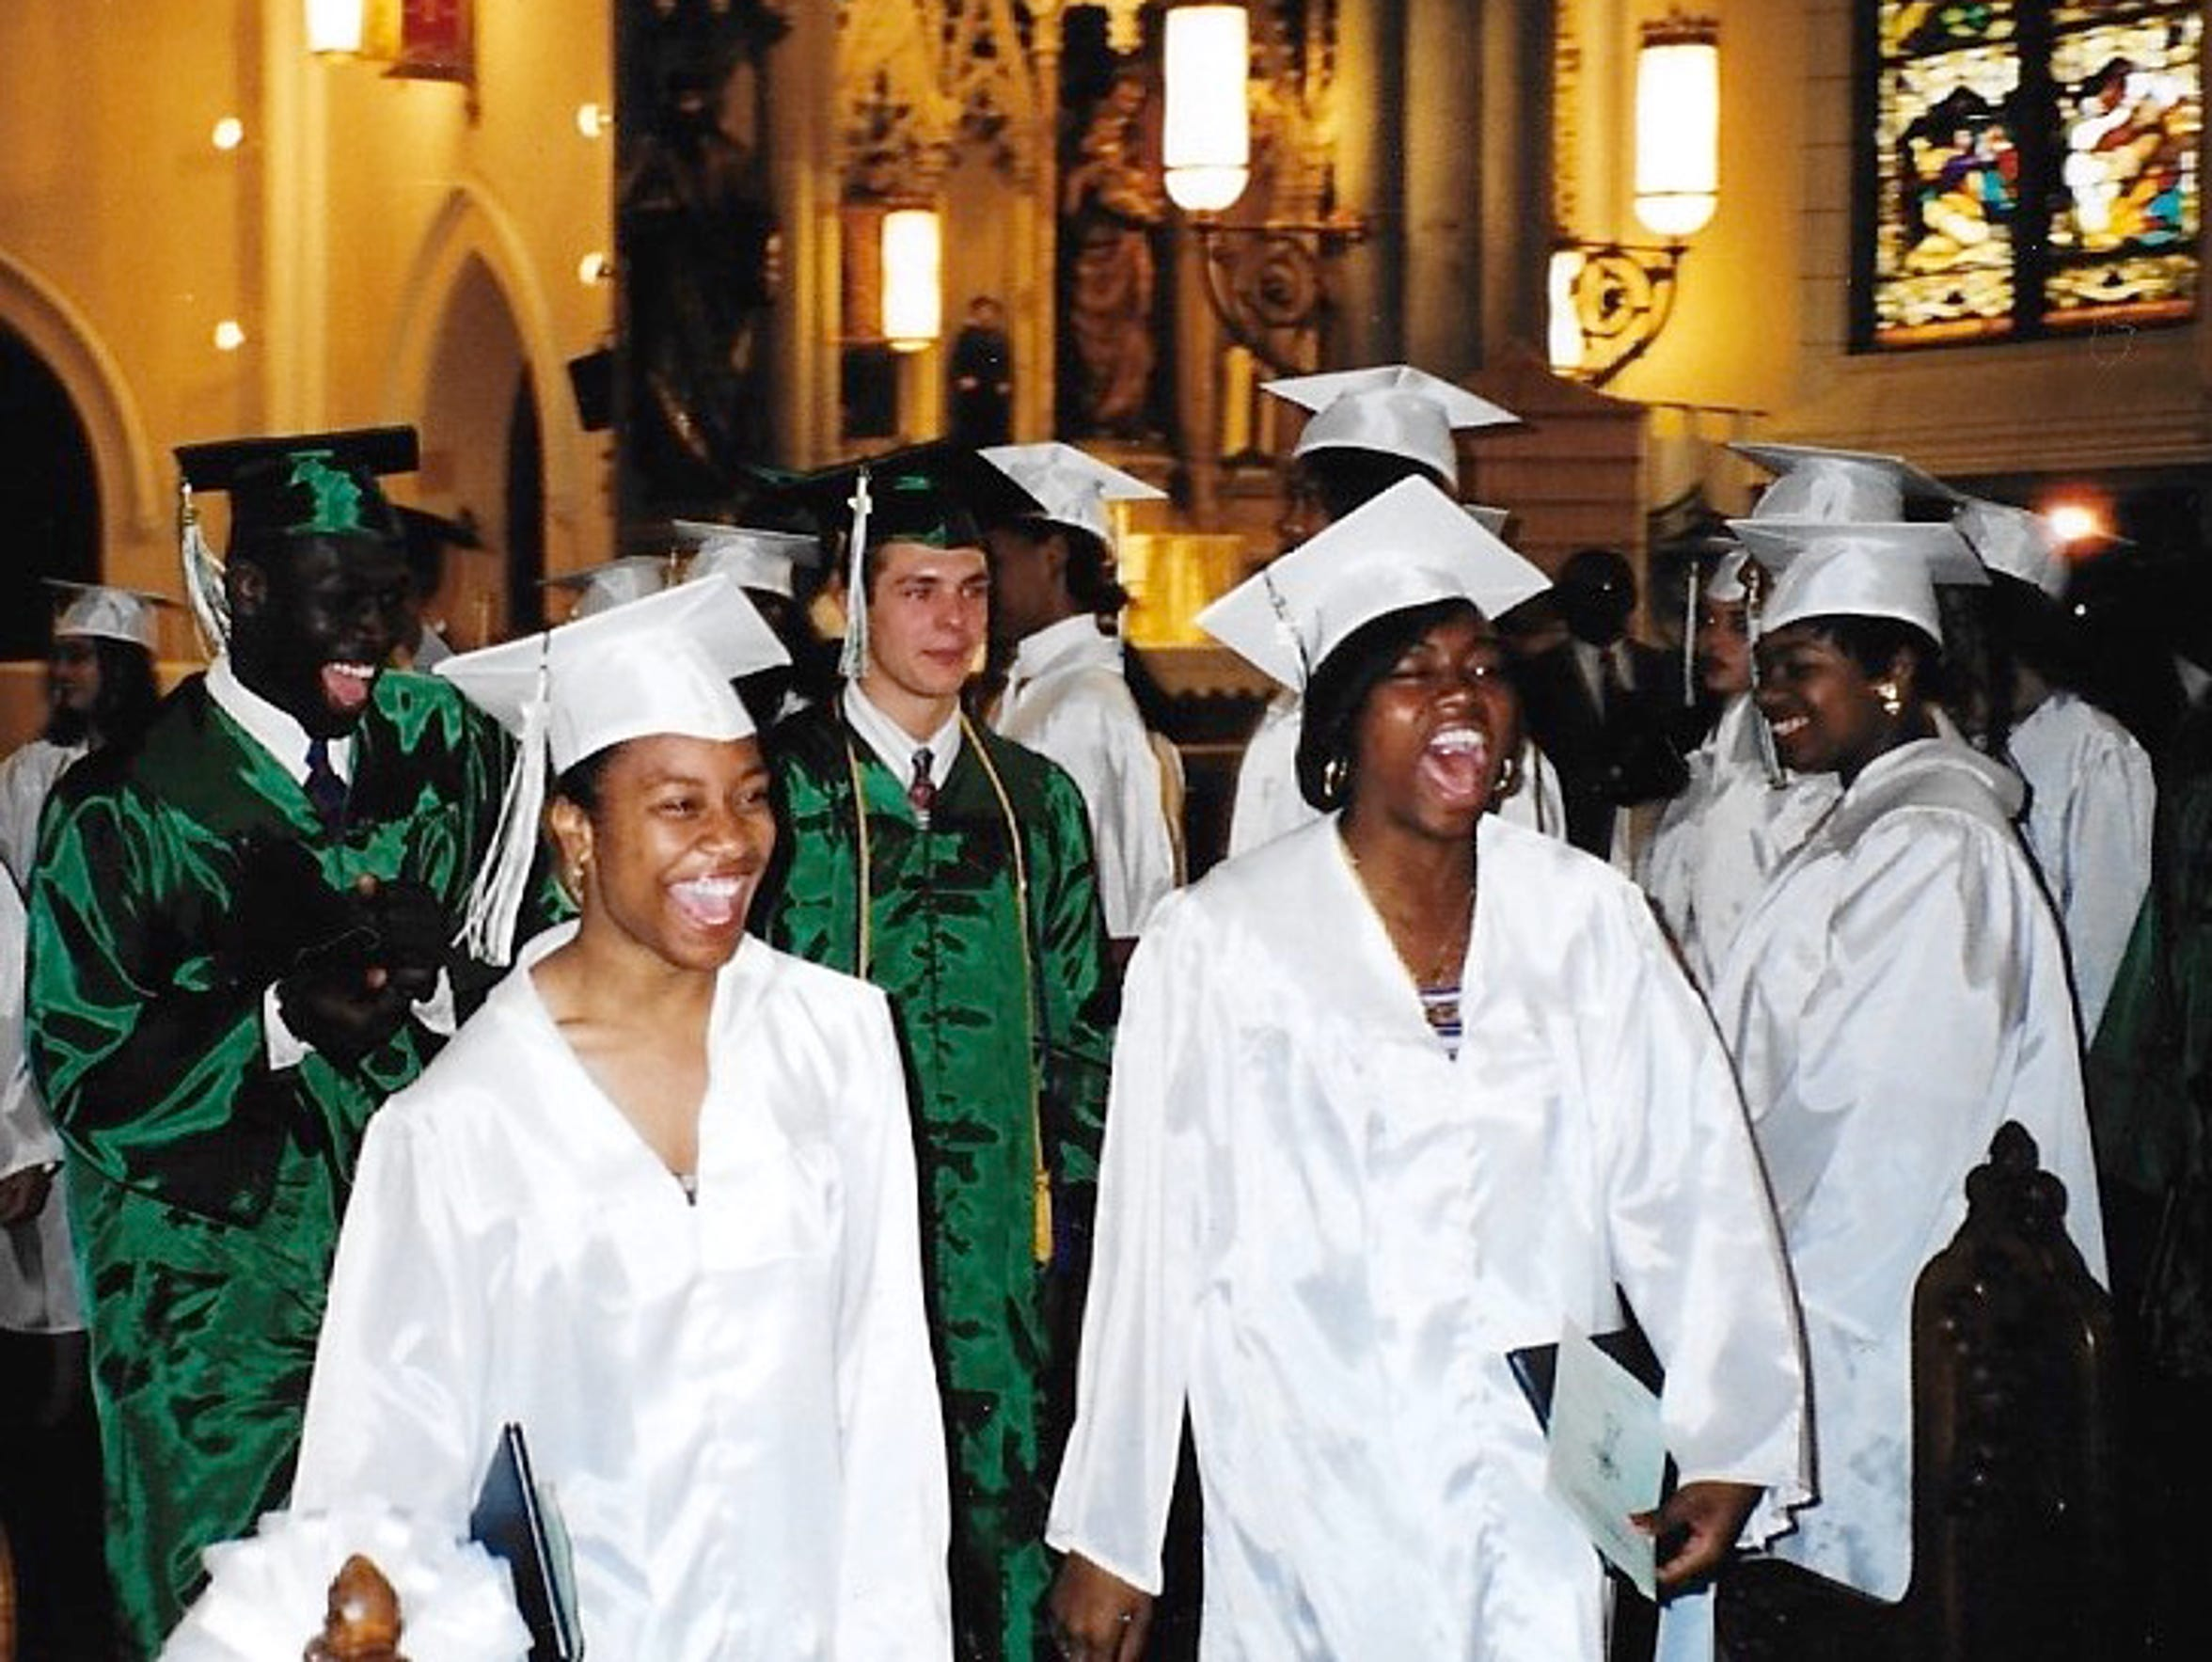 Corey Campbell, center, during his high school graduation